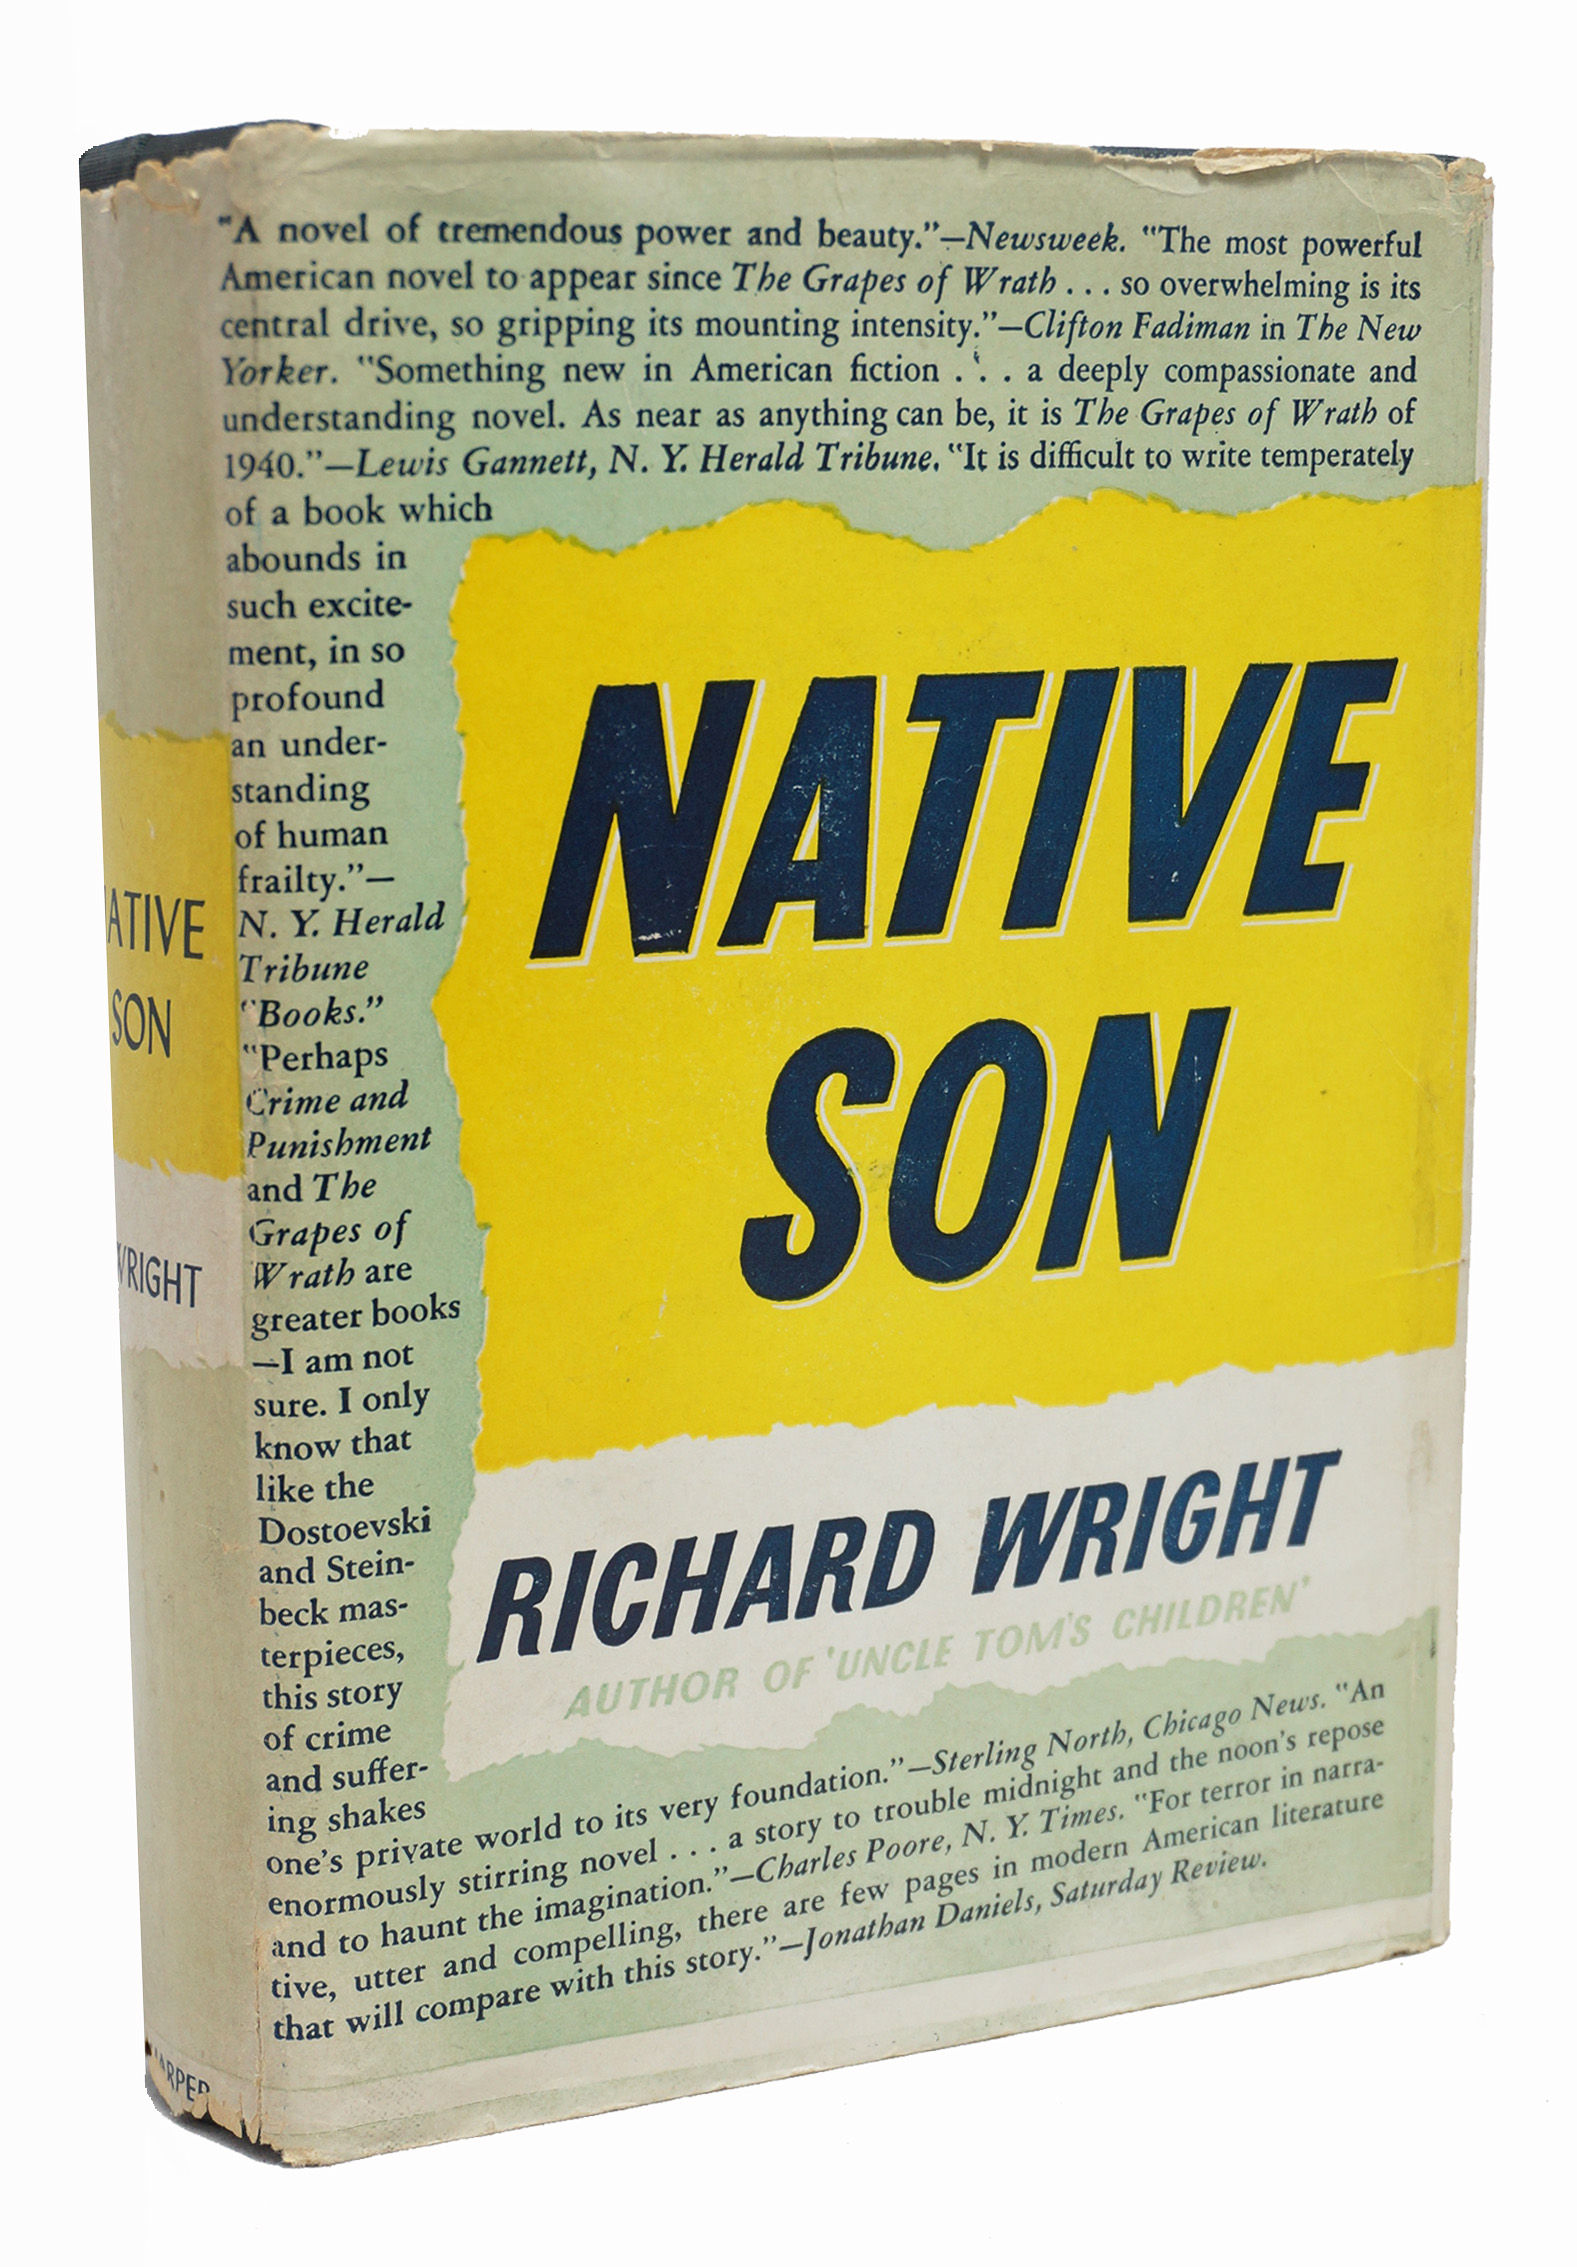 the motivation of fear in the novel native son by richard wright After bigger commits his crime, he begins to lose his fear of the white society that had, until then, always controlled him and held him down by murdering a white woman, bigger feels that he has finally struck back at the white world that he has feared and hated the author, richard wright, gives us a glimpse into bigger's.